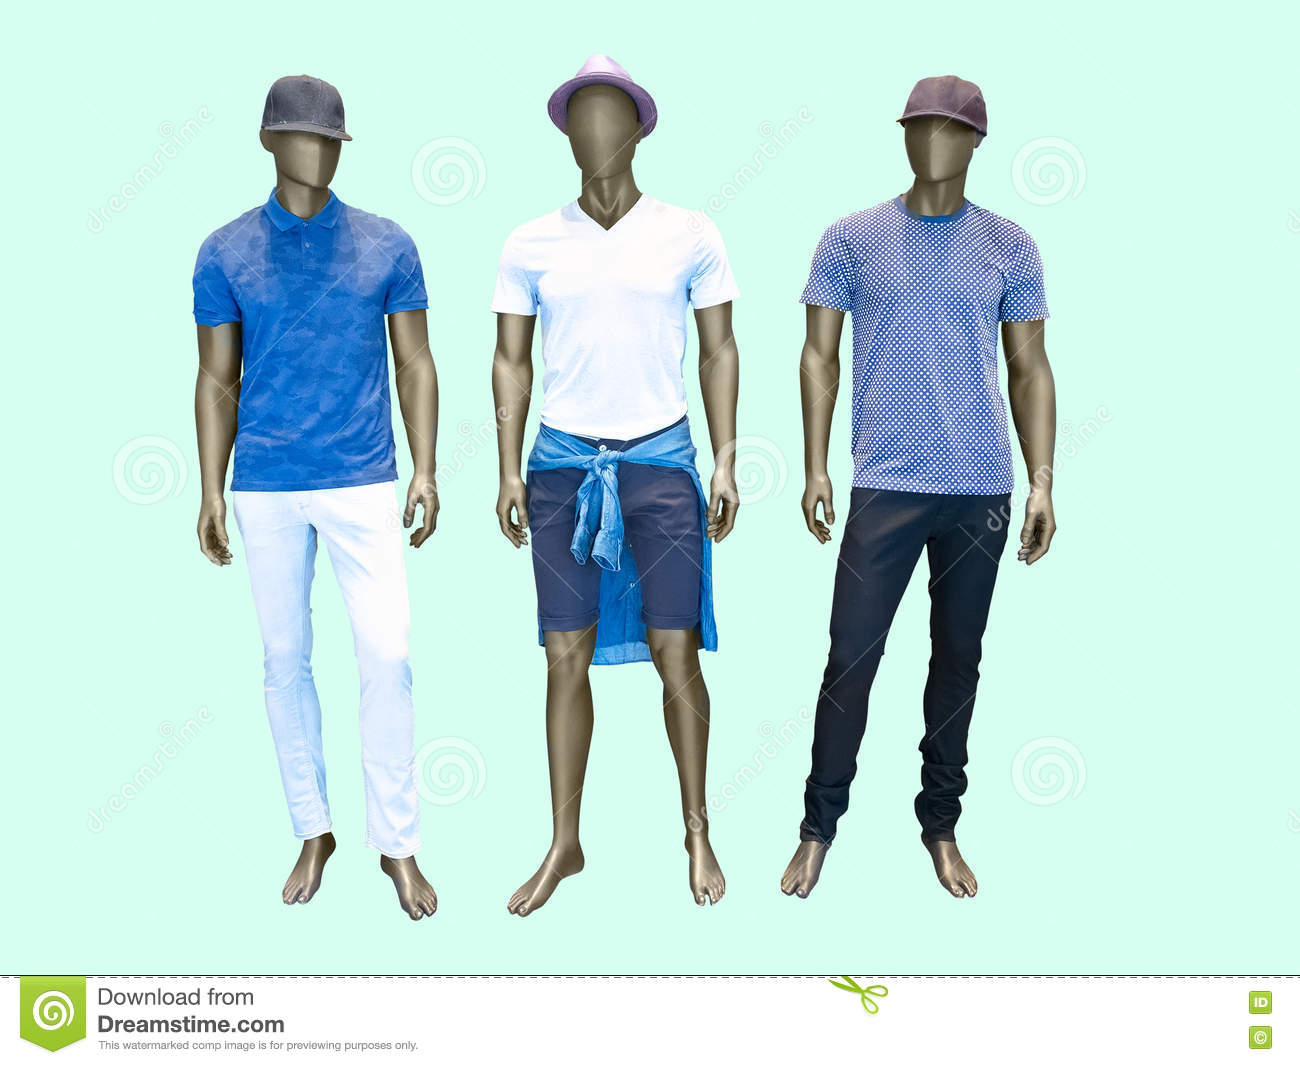 cfb976d3b930 Three male mannequins. In summer clothes over green background. No brand  names or copyright